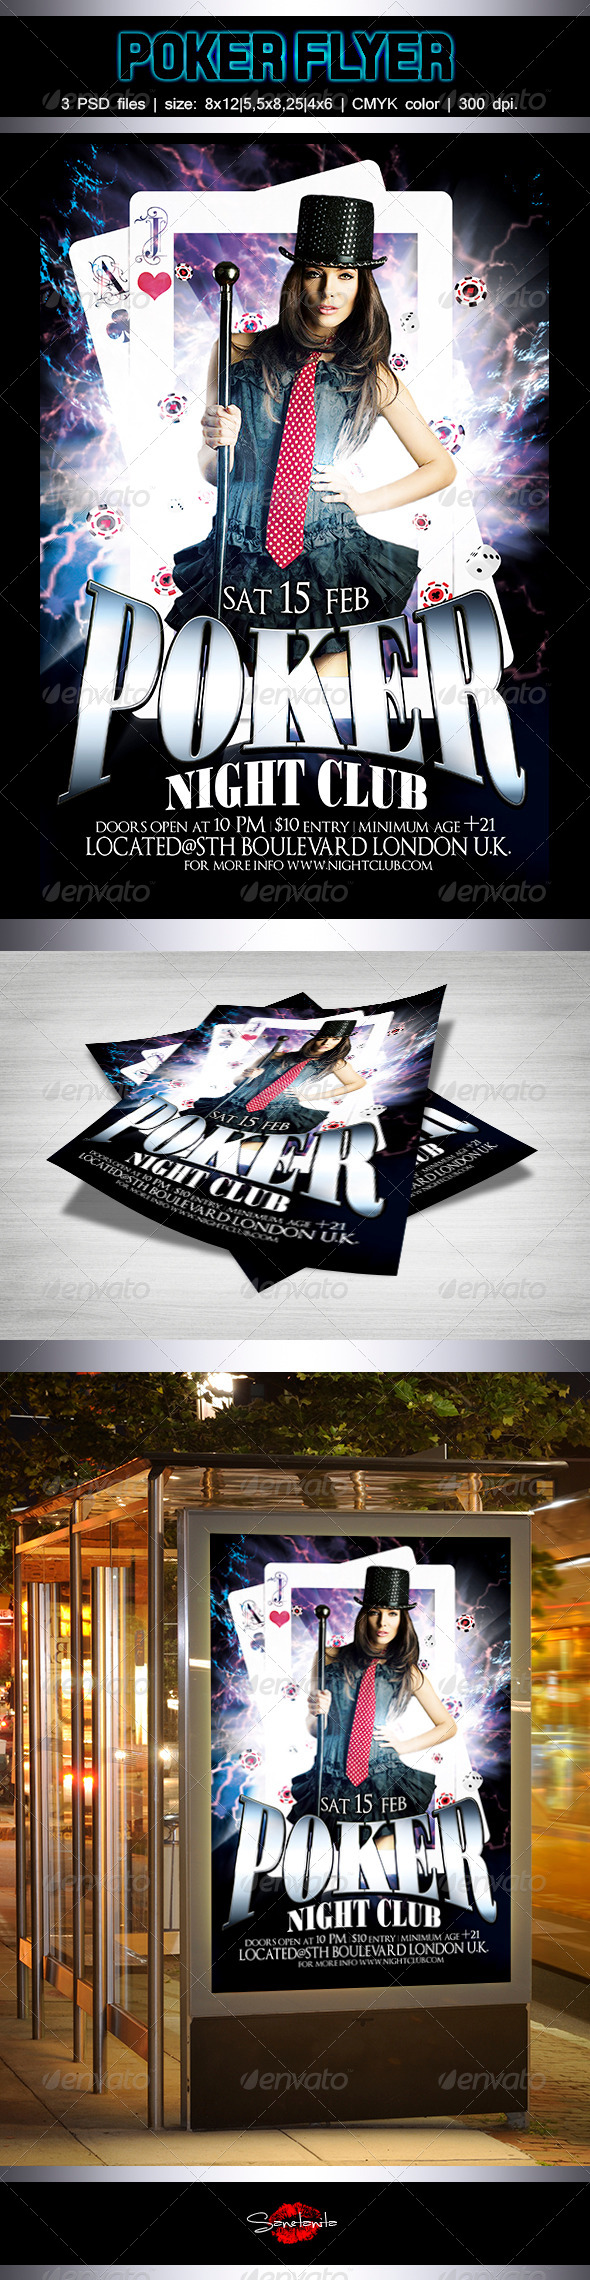 Poker Flyer Template - Miscellaneous Events